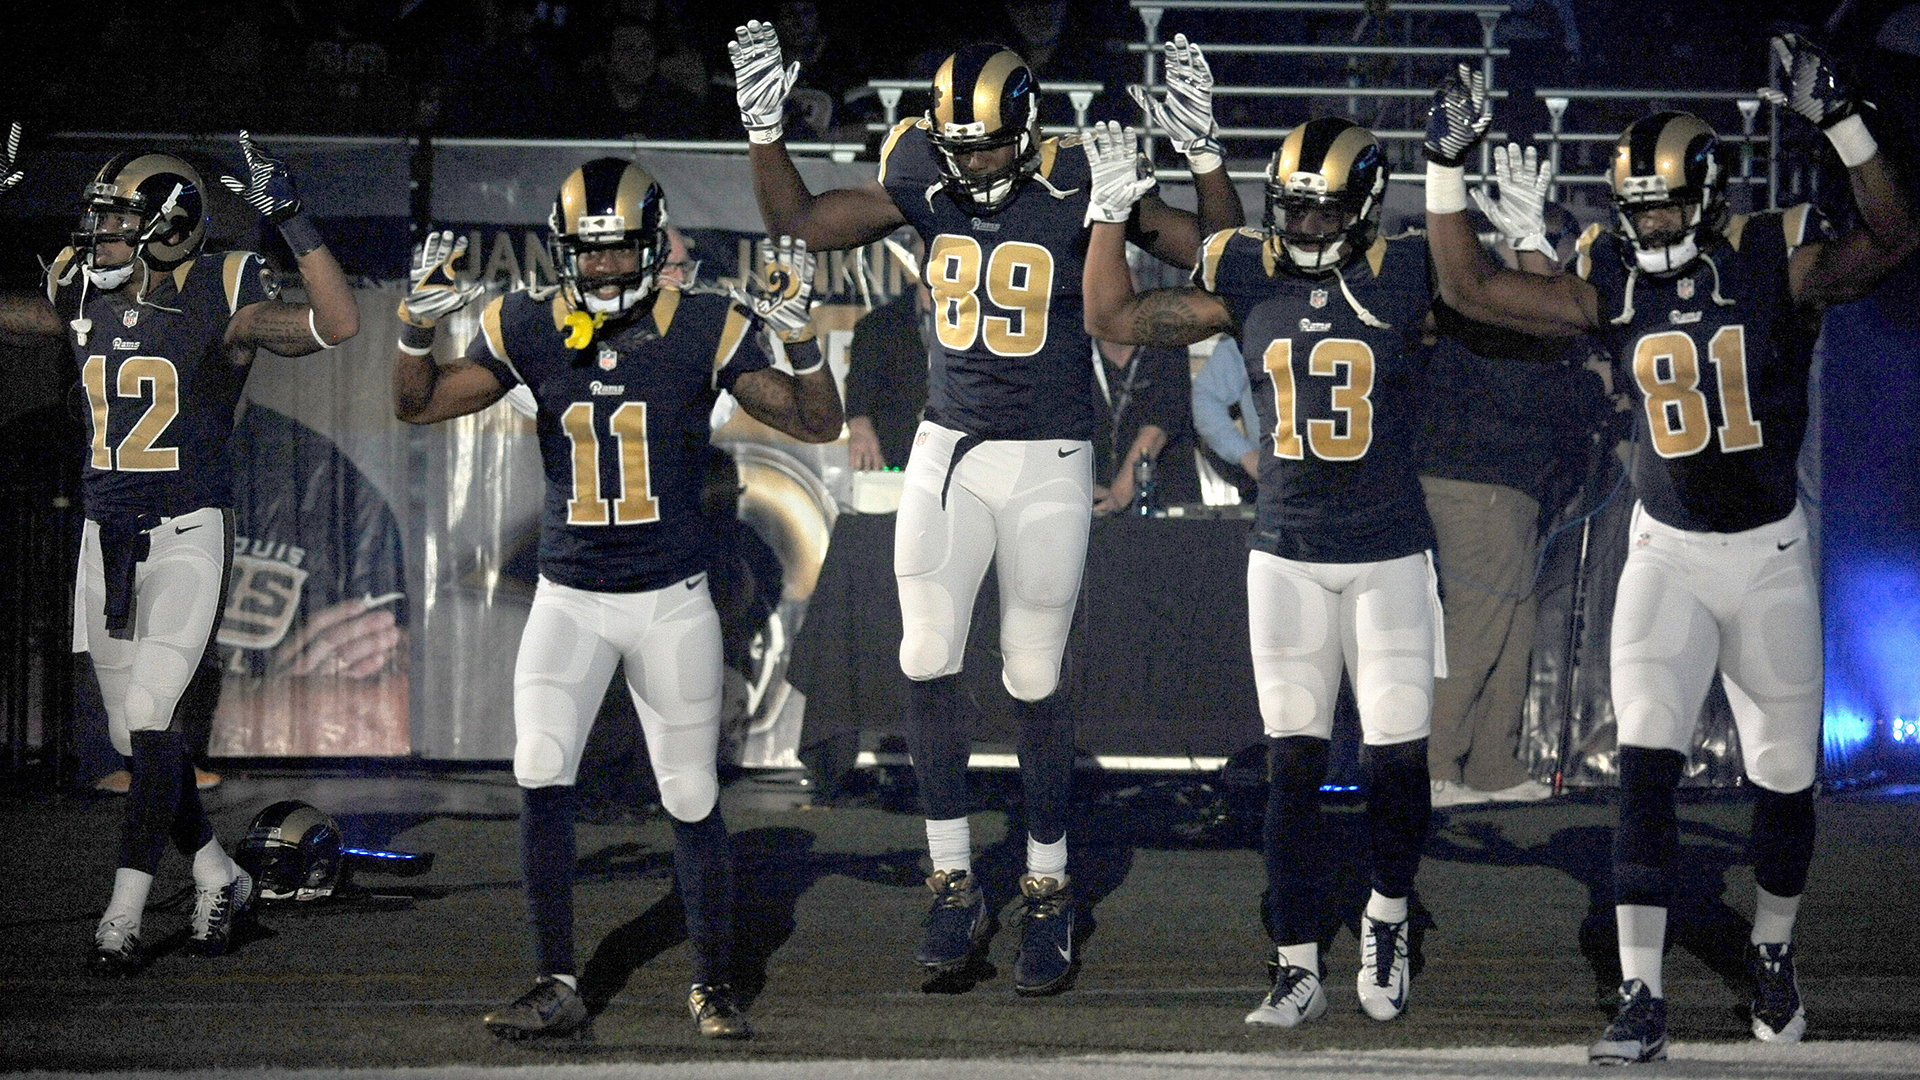 rams players 39 hands up don 39 t shoot 39 gesture sign of 39 respect 39 nbc news. Black Bedroom Furniture Sets. Home Design Ideas